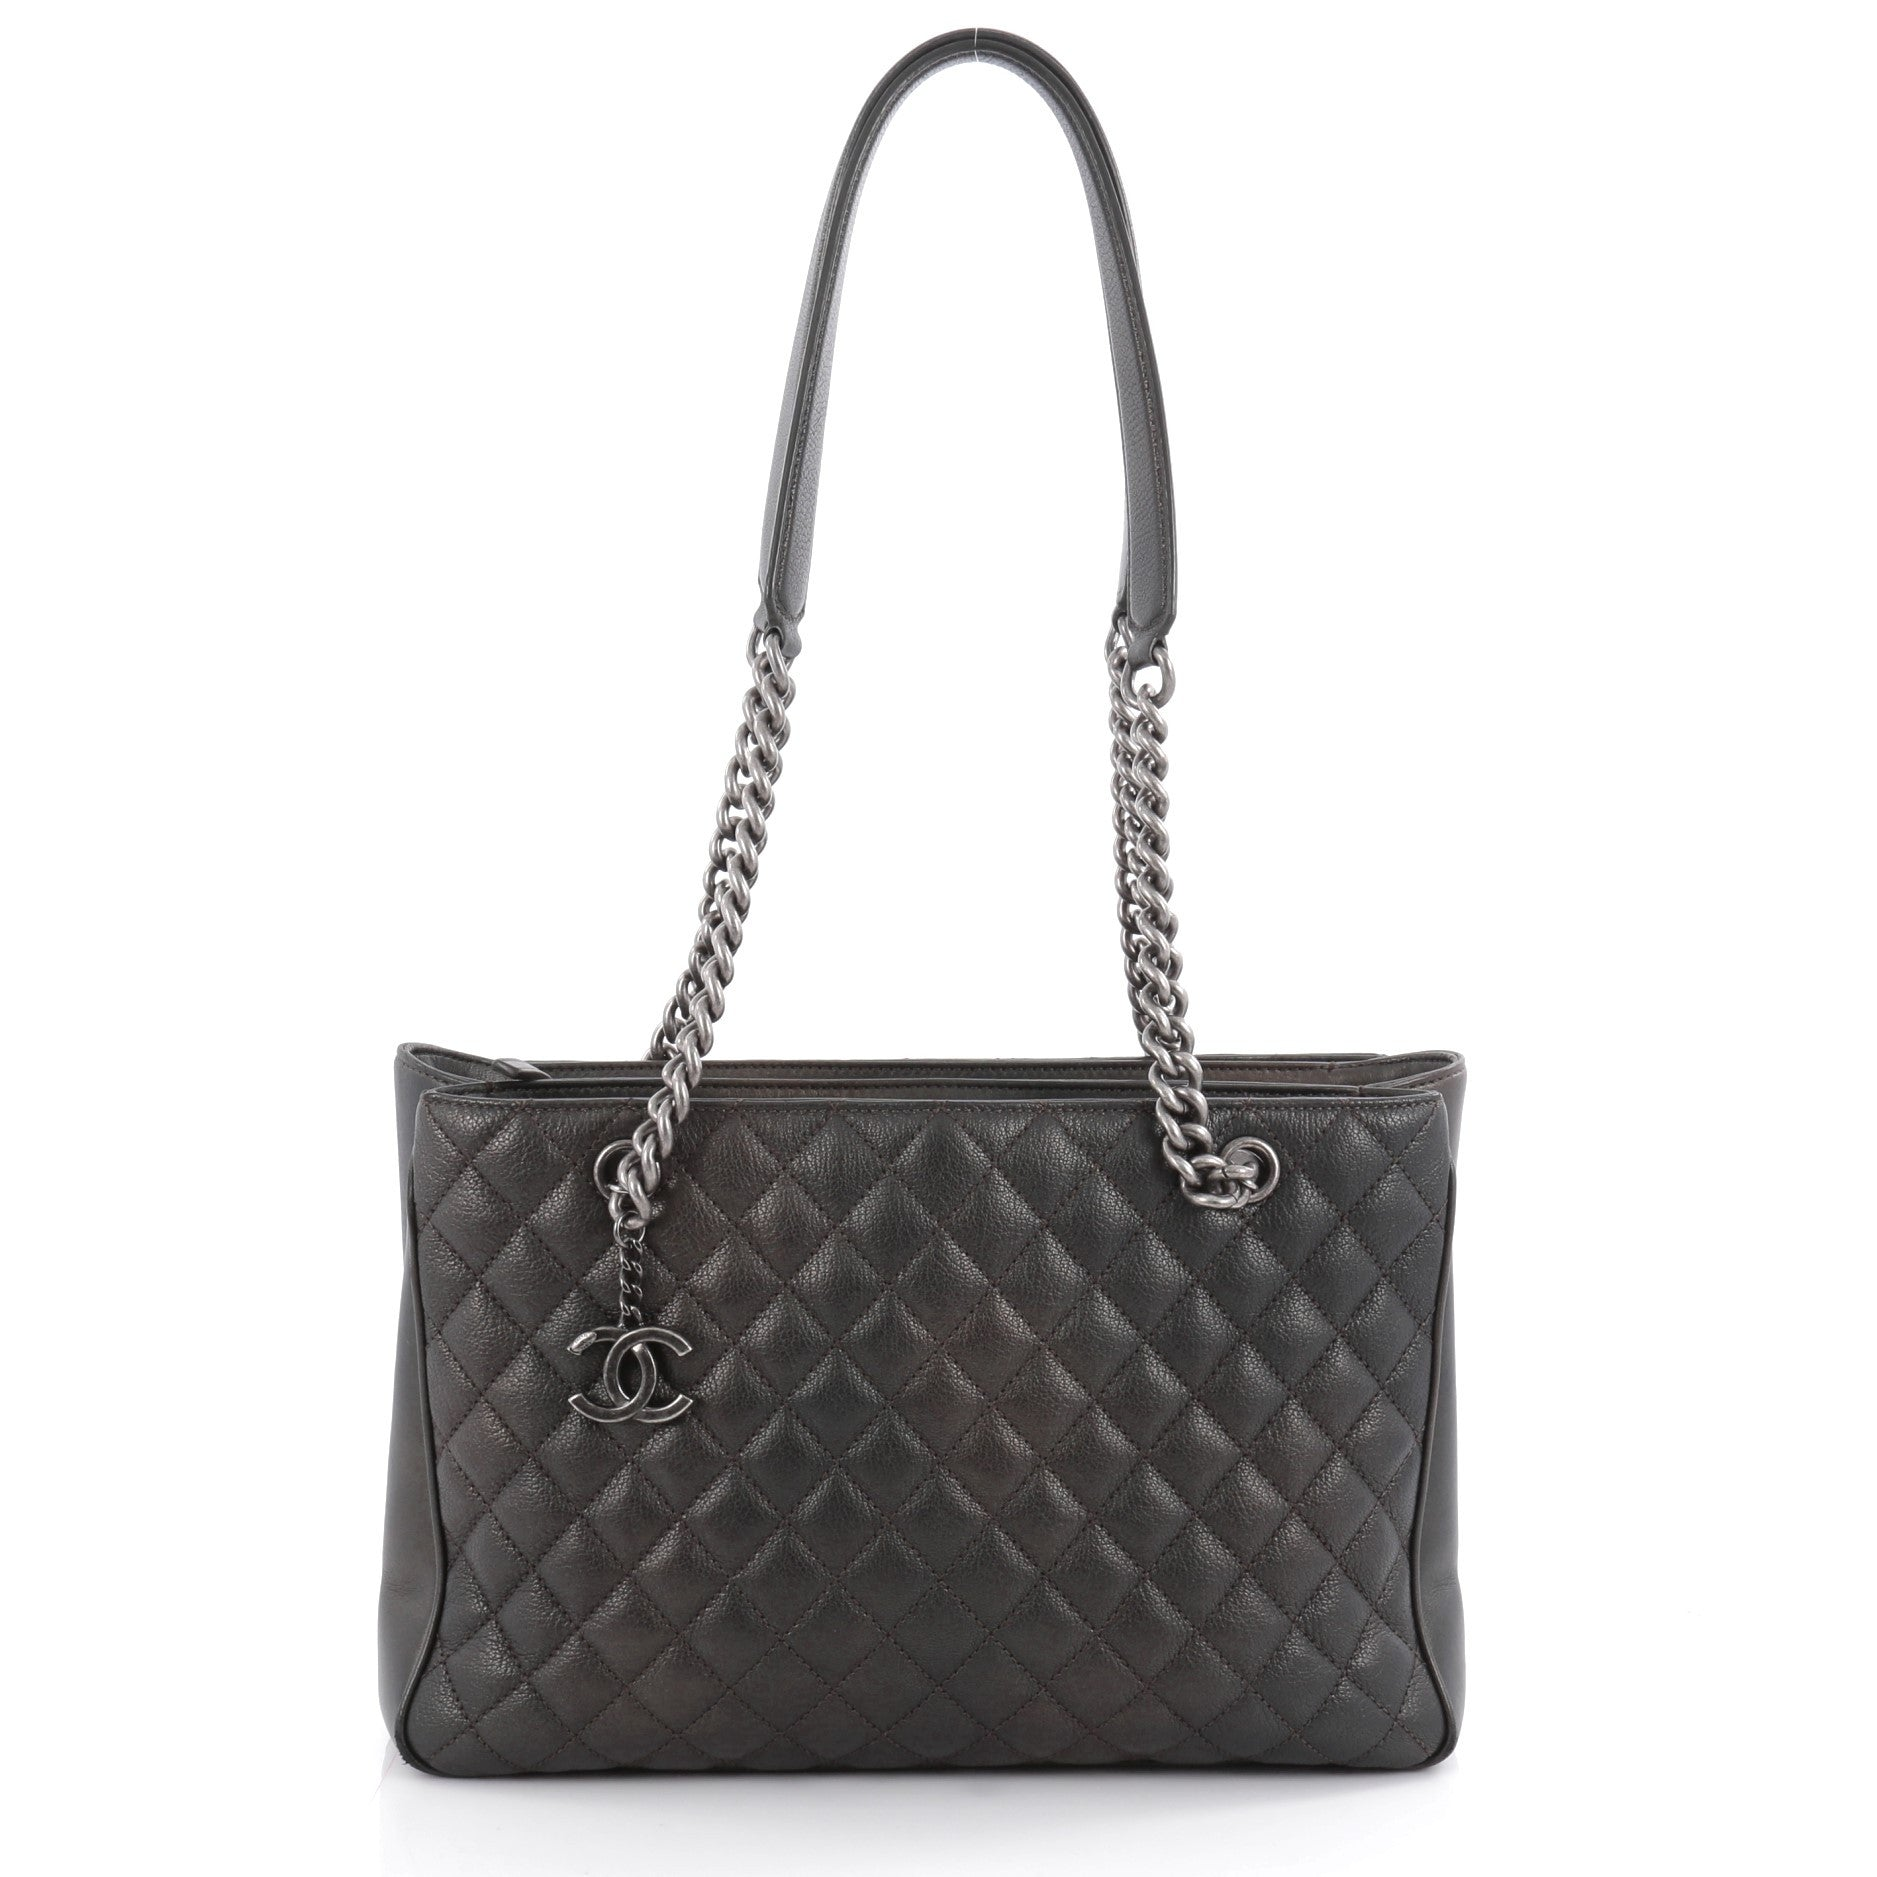 e4090dd5d2a944 20723-03_Chanel_Rock_in_Rome_Shopping_Tote_Quilted_2D_0003.jpg?v=1499781757